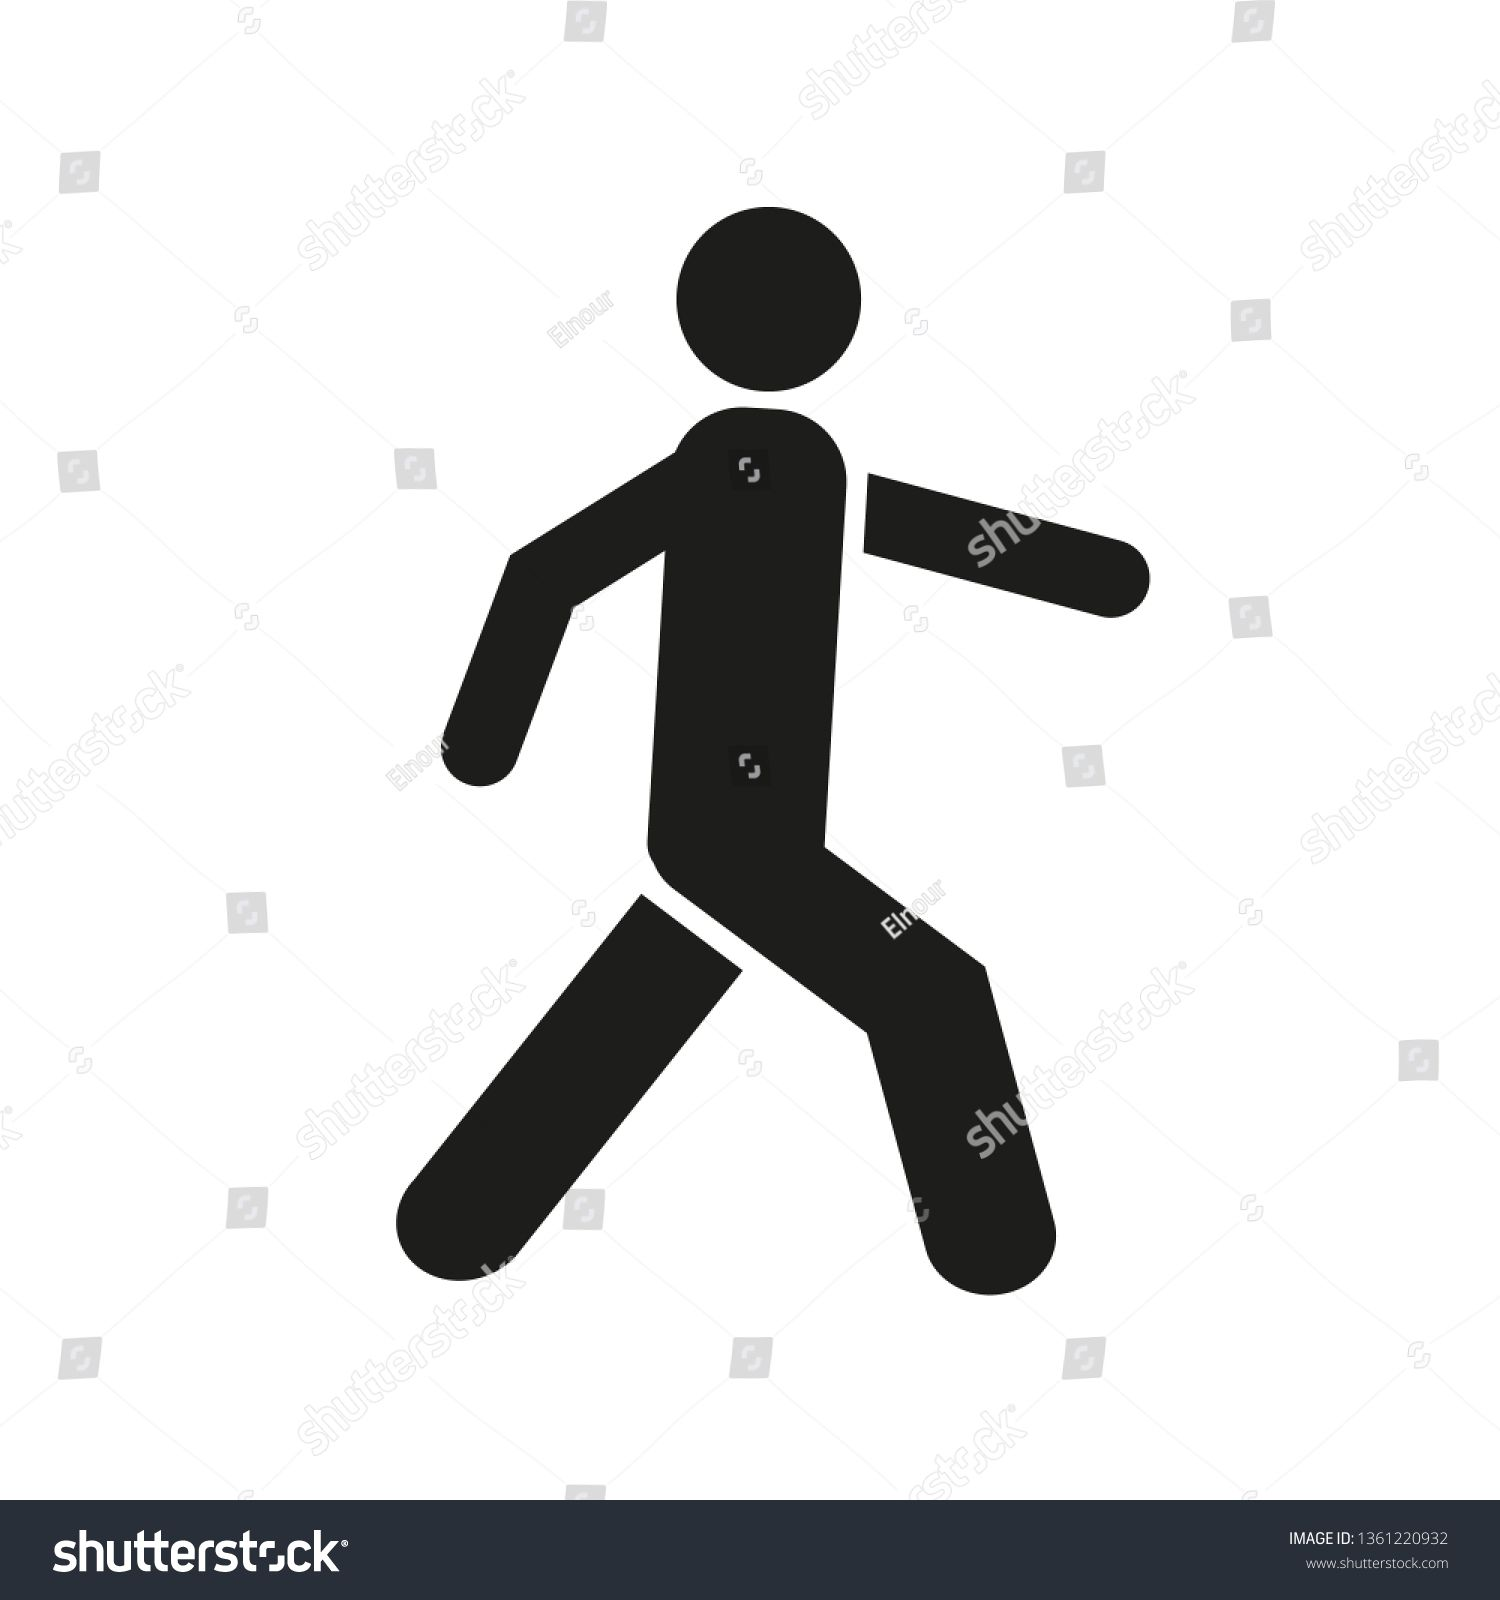 man walk icon walking man vector icon people walk sign illustration pedestrian vector sign symbol on white background sponsore in 2020 man vector walking man icon man walk icon walking man vector icon